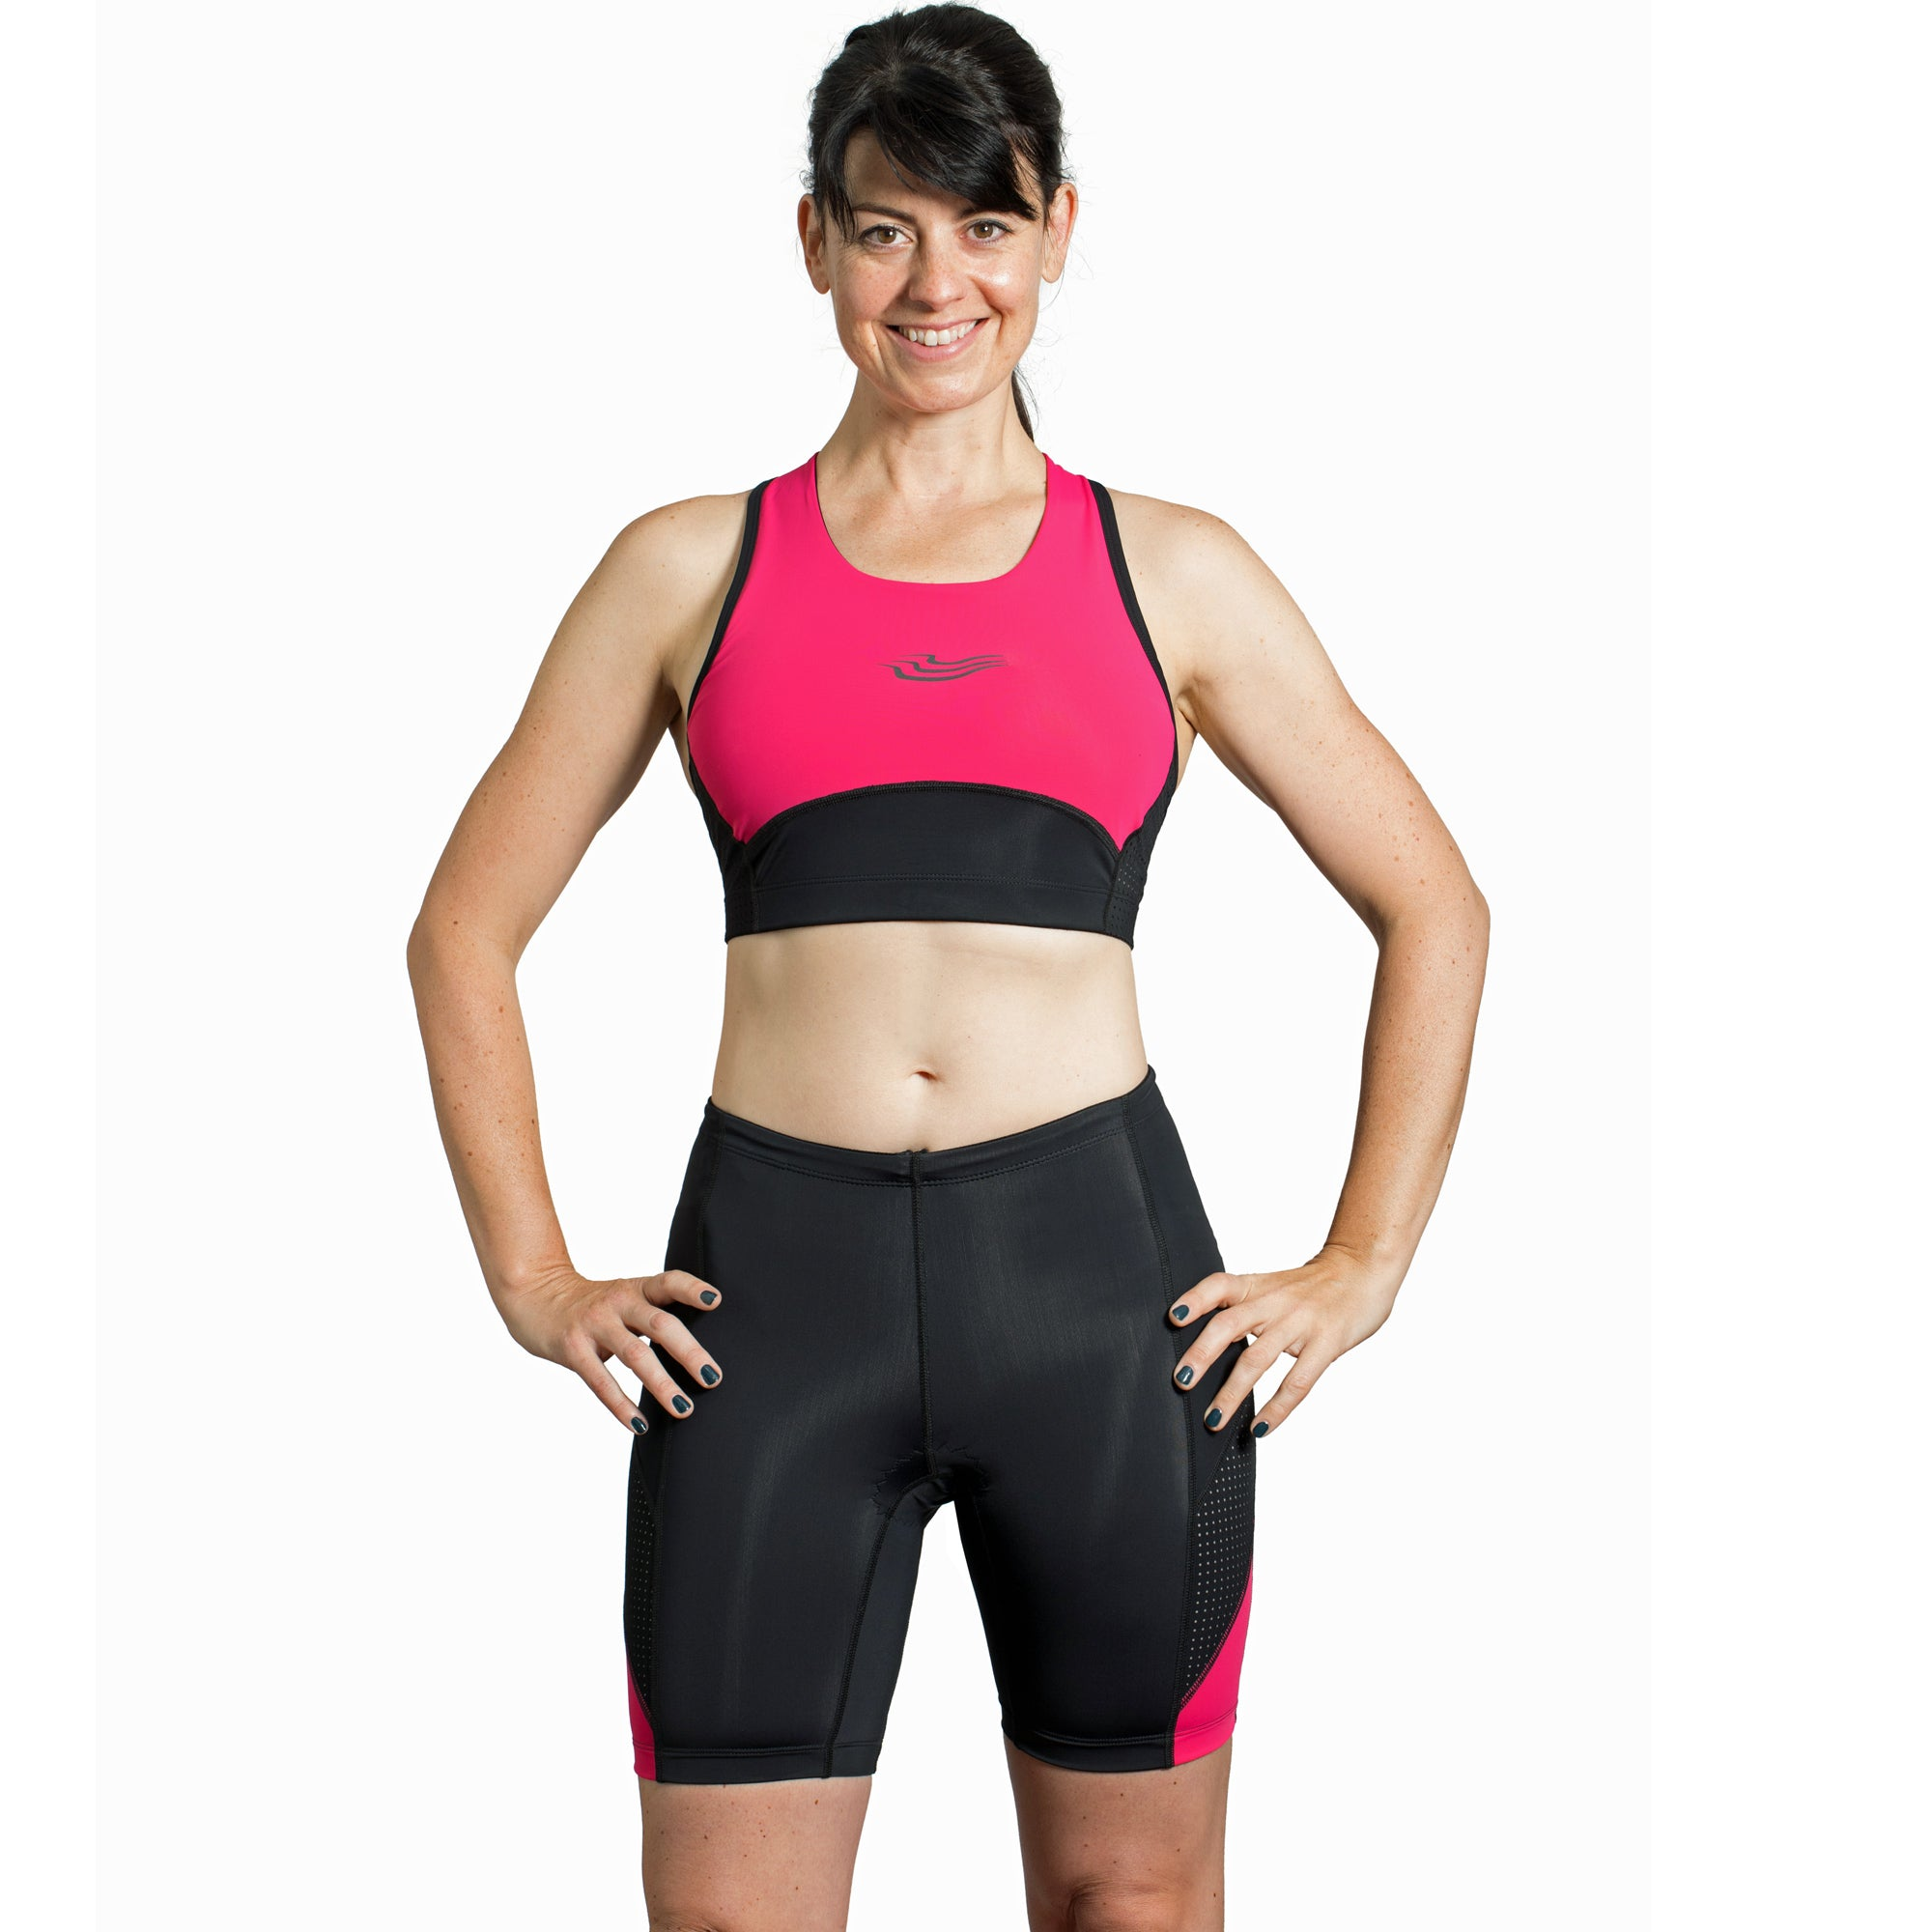 Beat Tri Crop Top with Support Lining, Paloma Pink